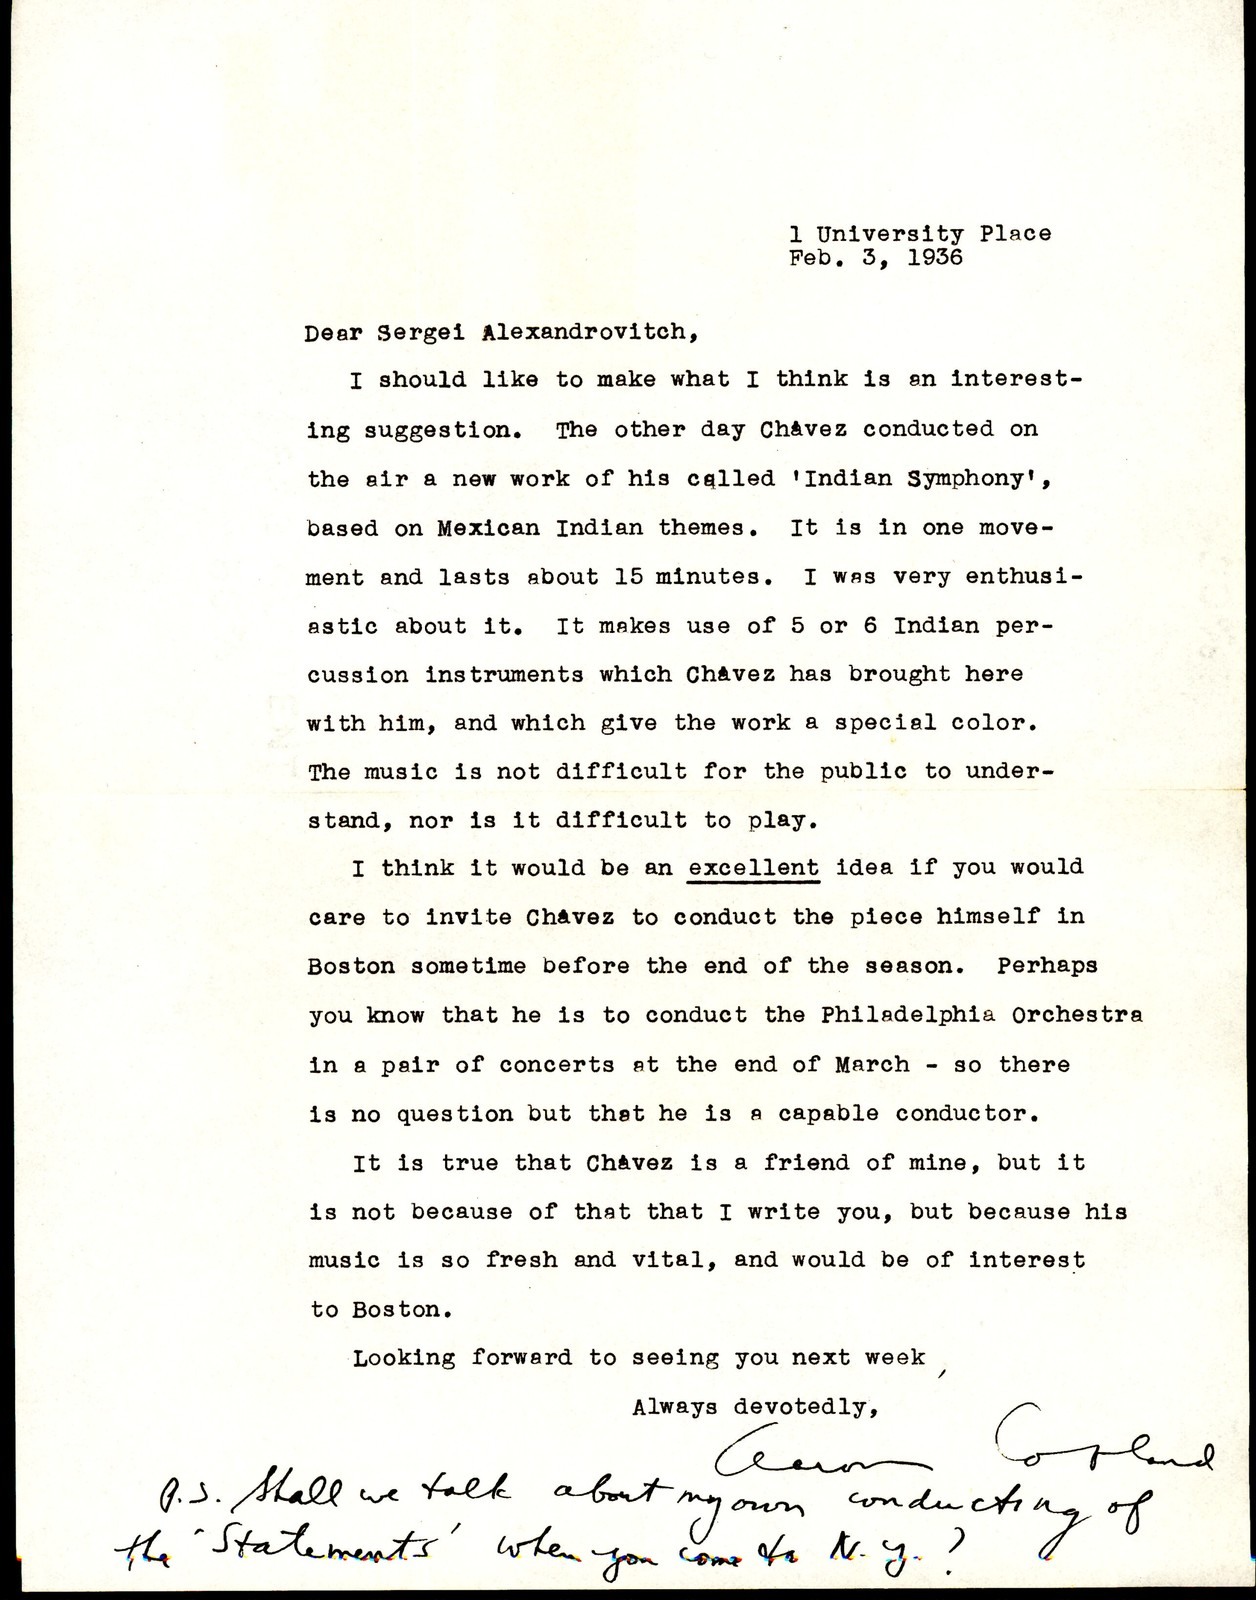 Letter from Aaron Copland to Serge Koussevitzky, February 3, 1936.